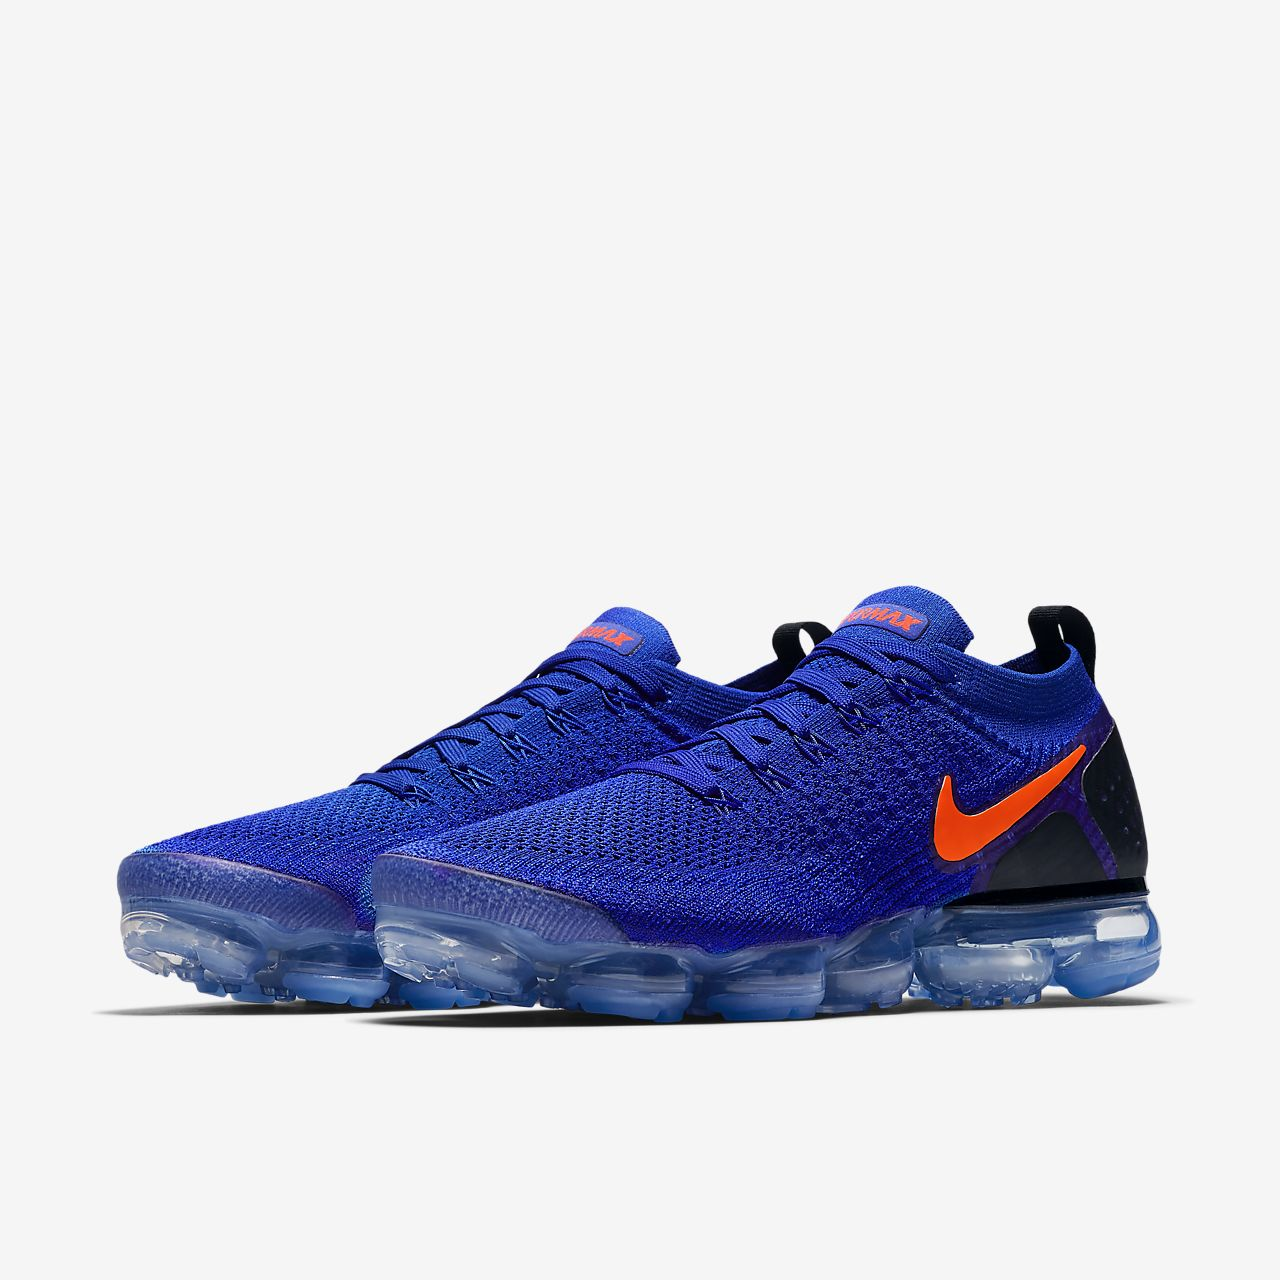 05288644a48cc Nike Air Vapormax Flyknit 2 Mens 942842-400 Racer Blue Running Shoes Size 12